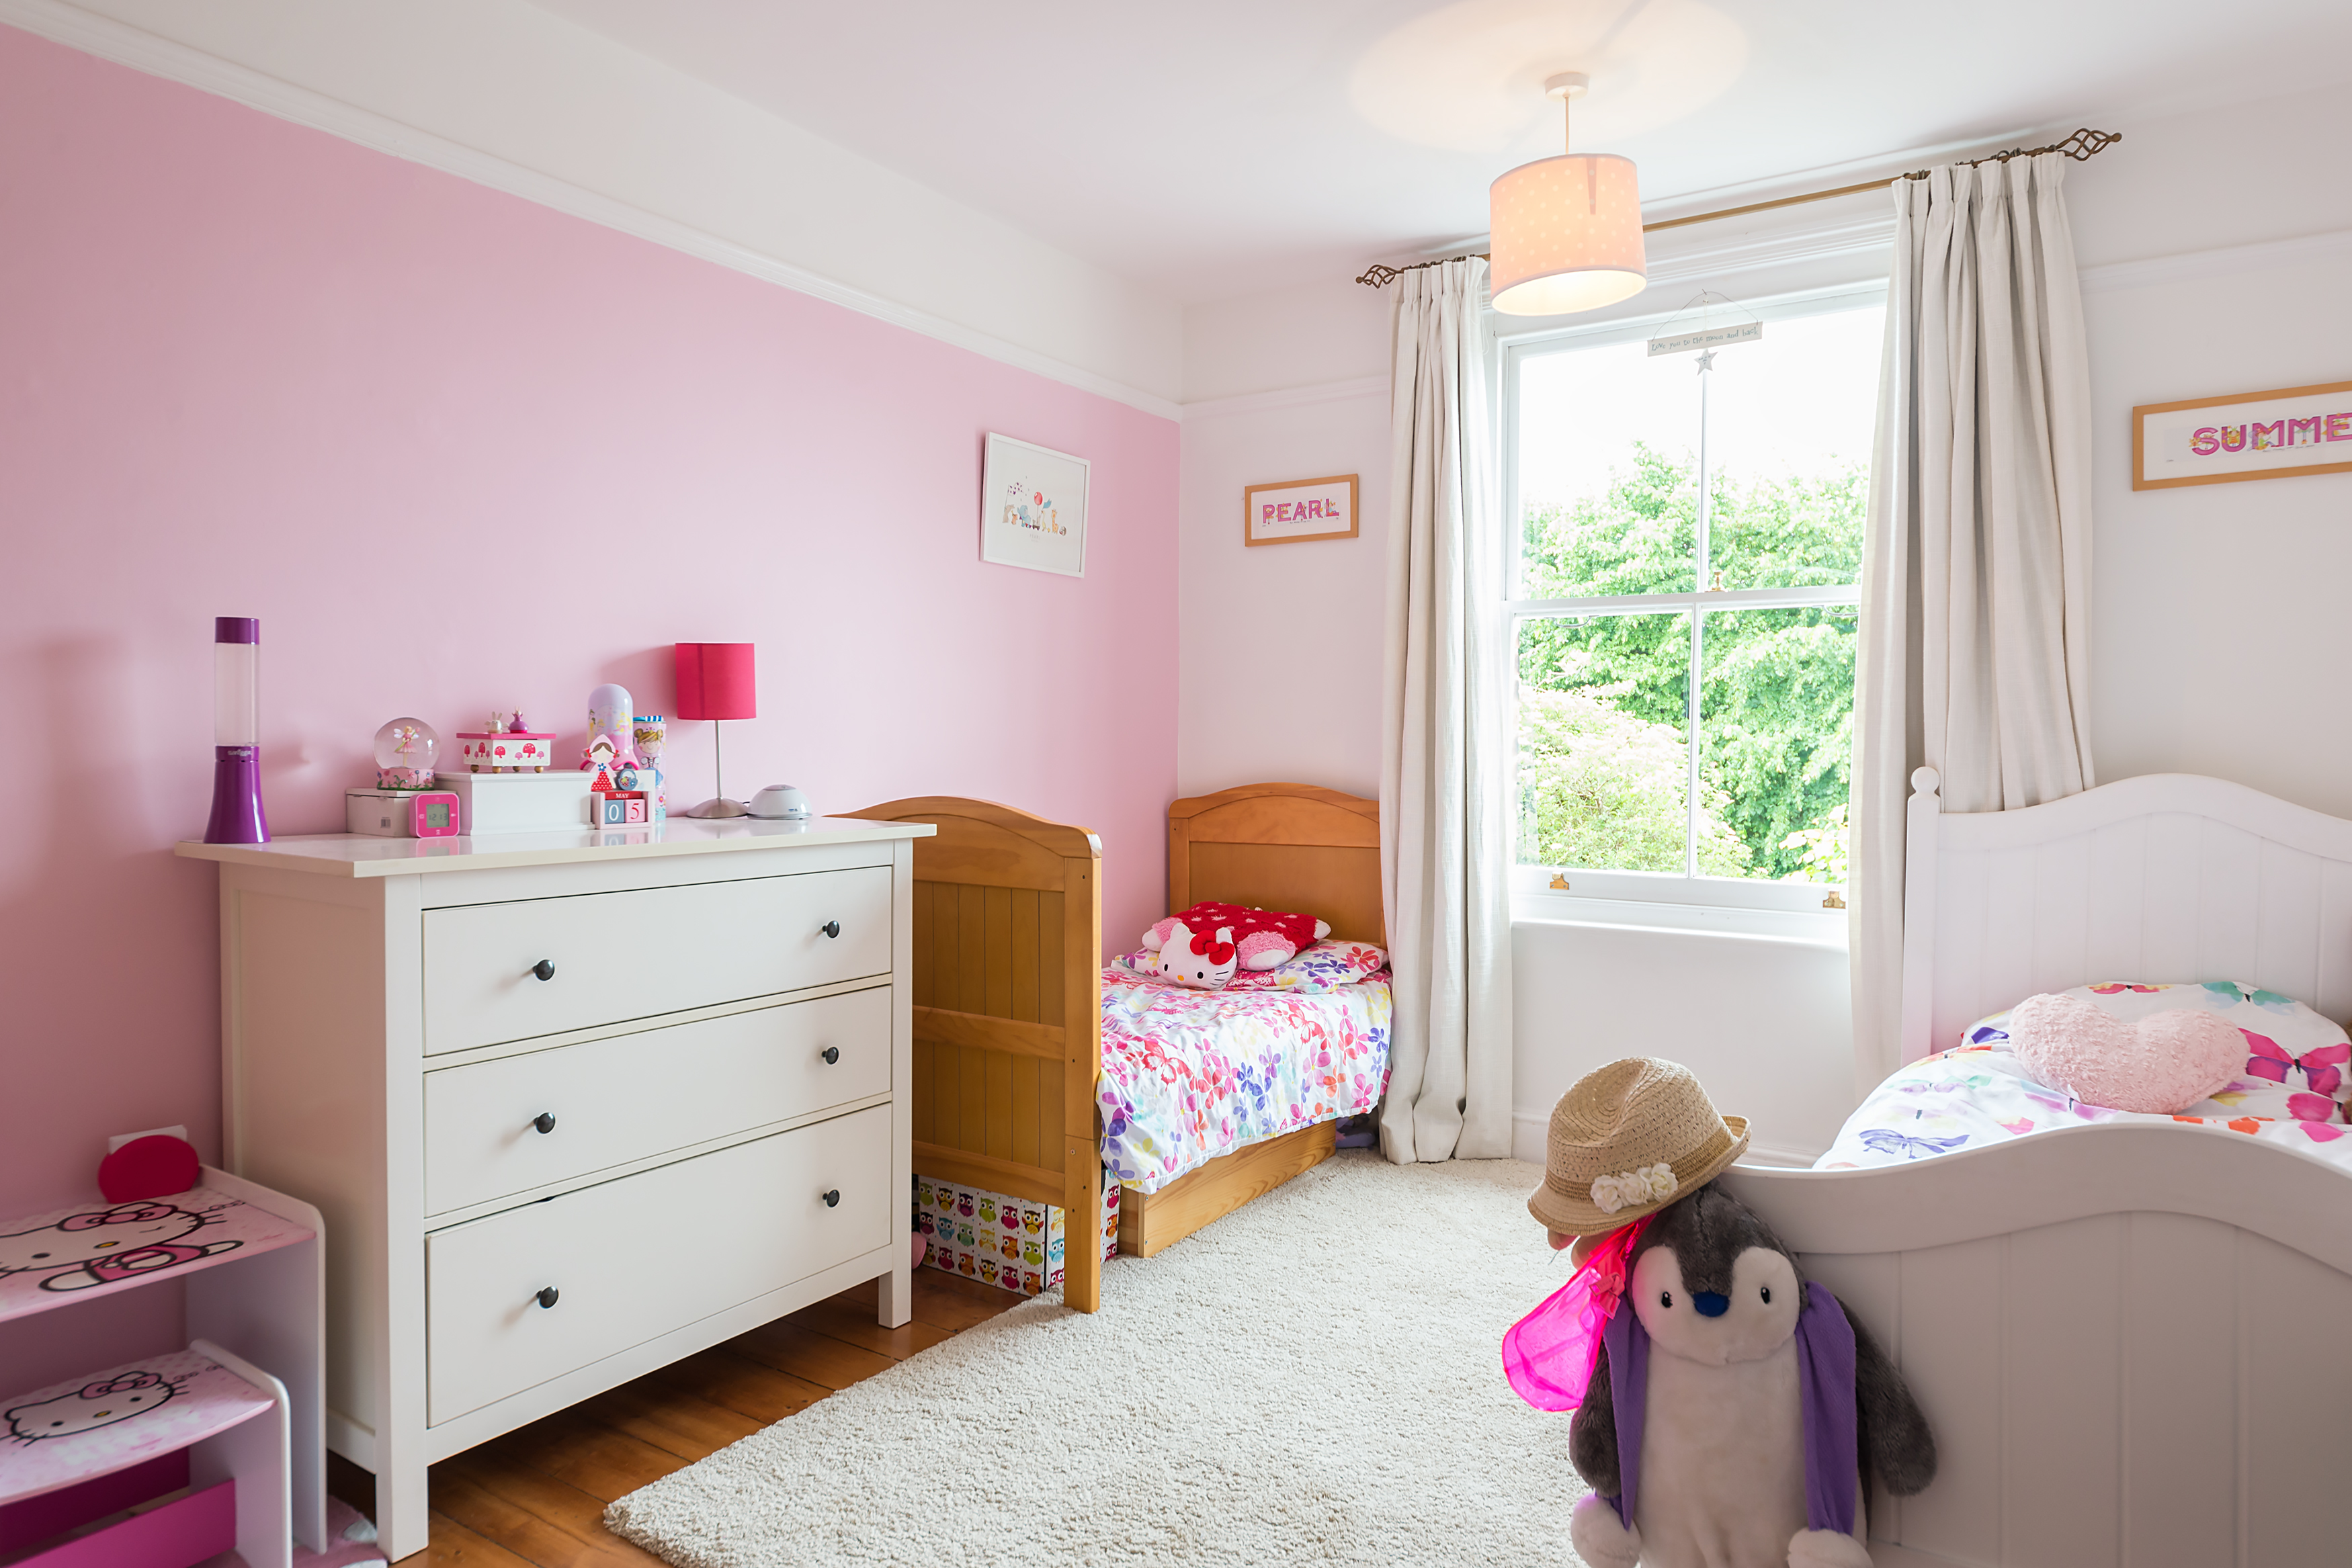 Reigate interior photographer